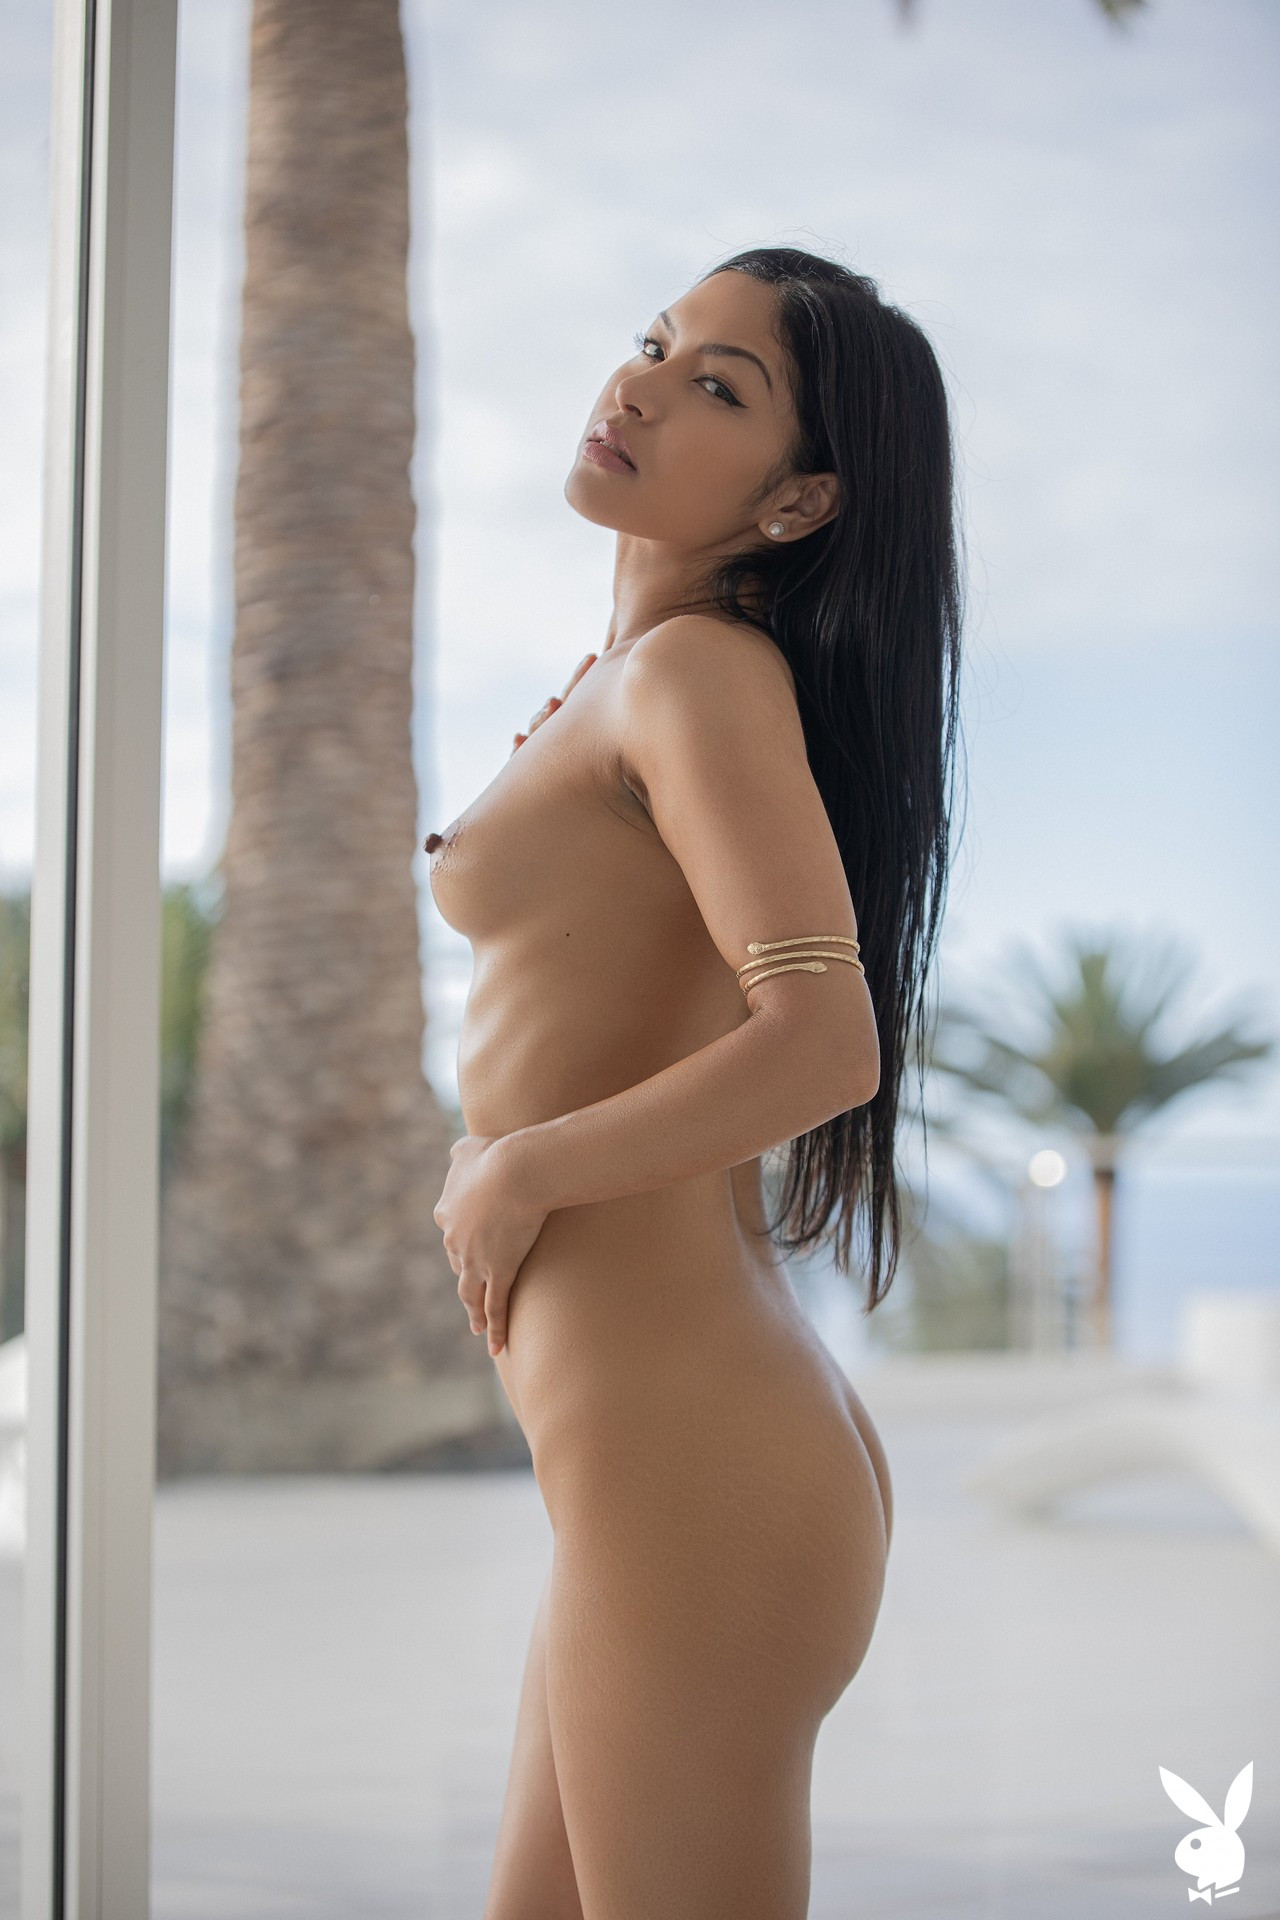 Chloe Rose In Exquisite View Playboy Plus (10)